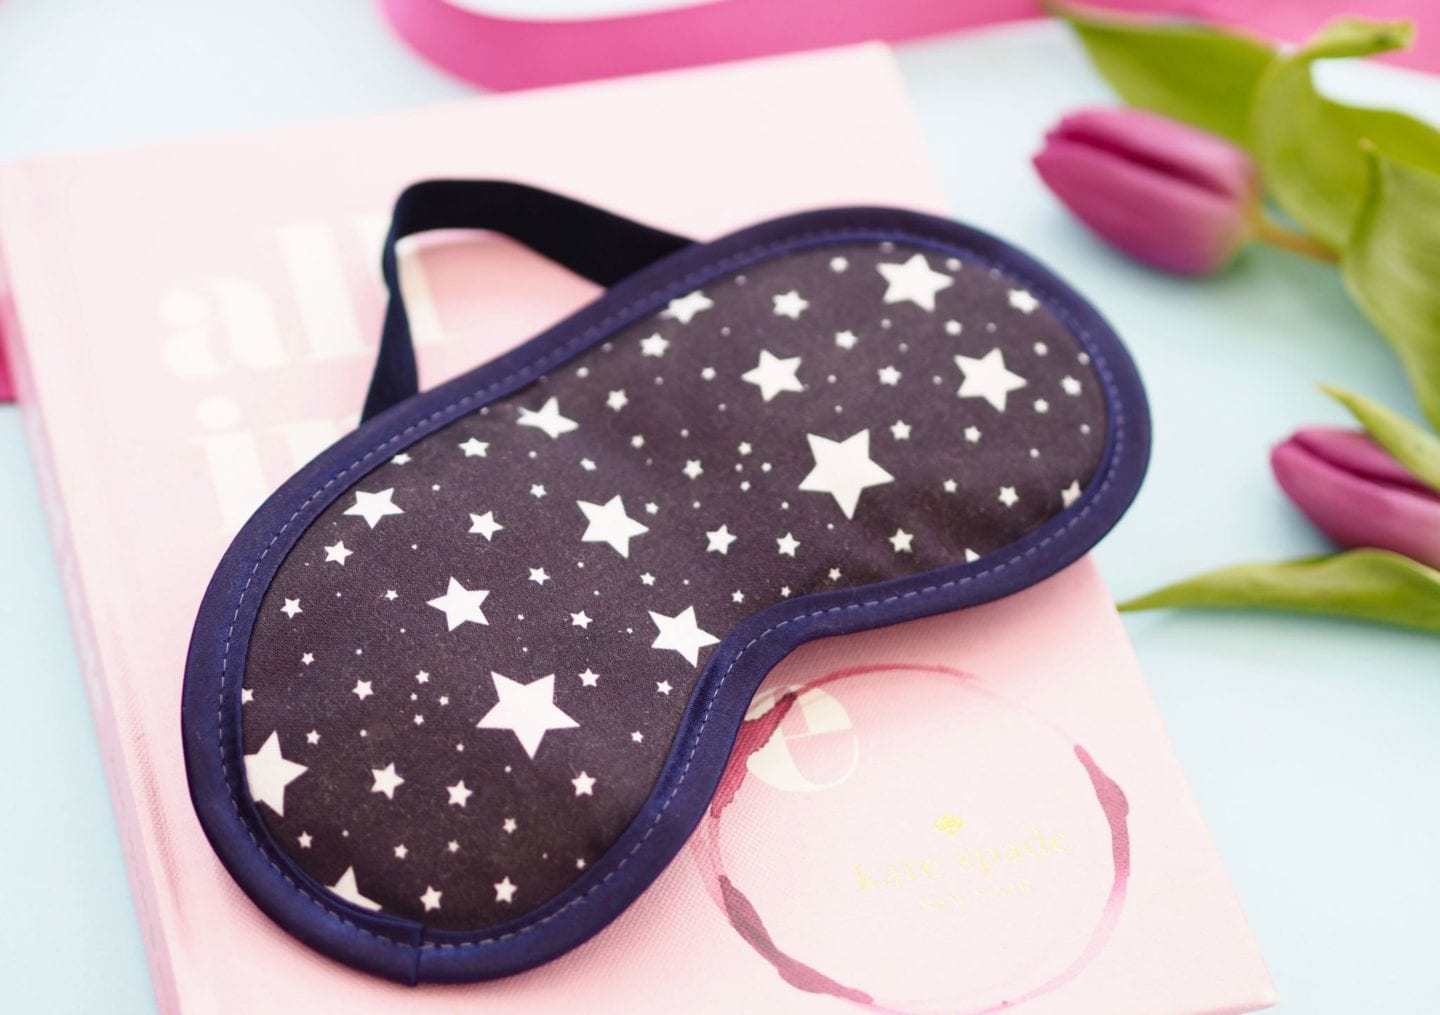 Catherine-Jean-Lavender-Filled-Eye-Mask